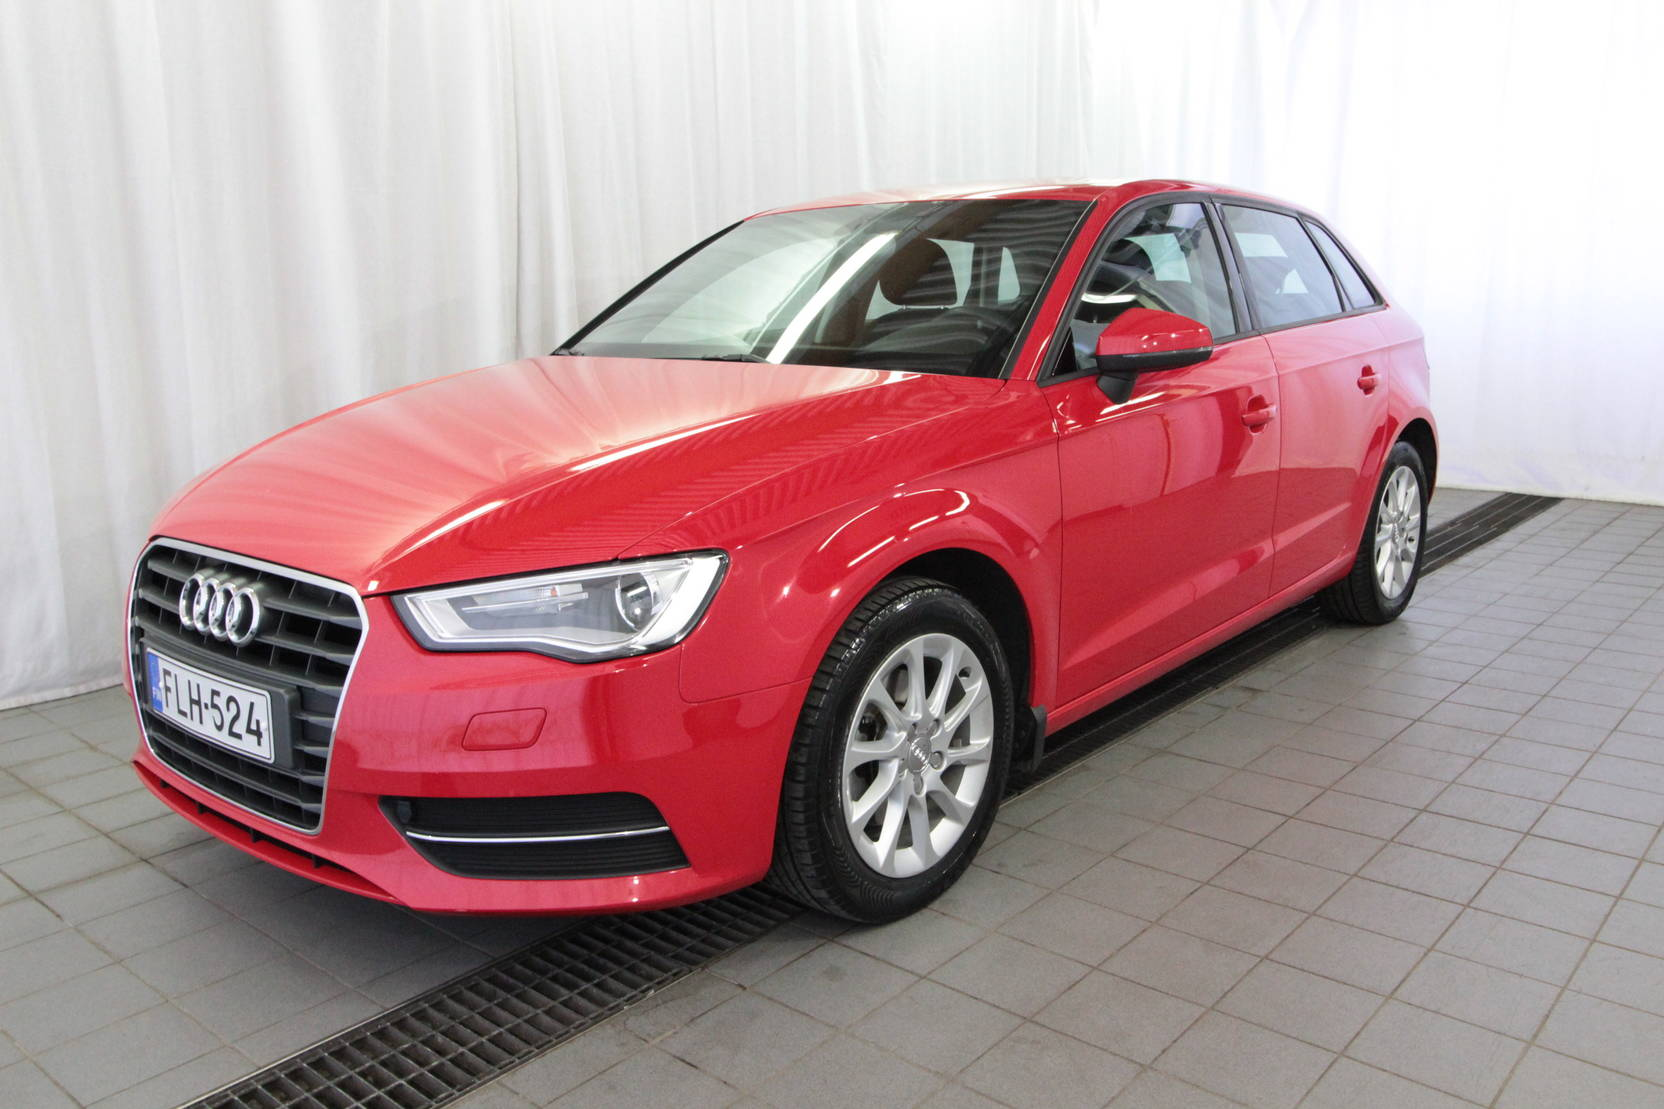 Audi A3 Sb Business 1.4 Tfsi 90 Kw detail1